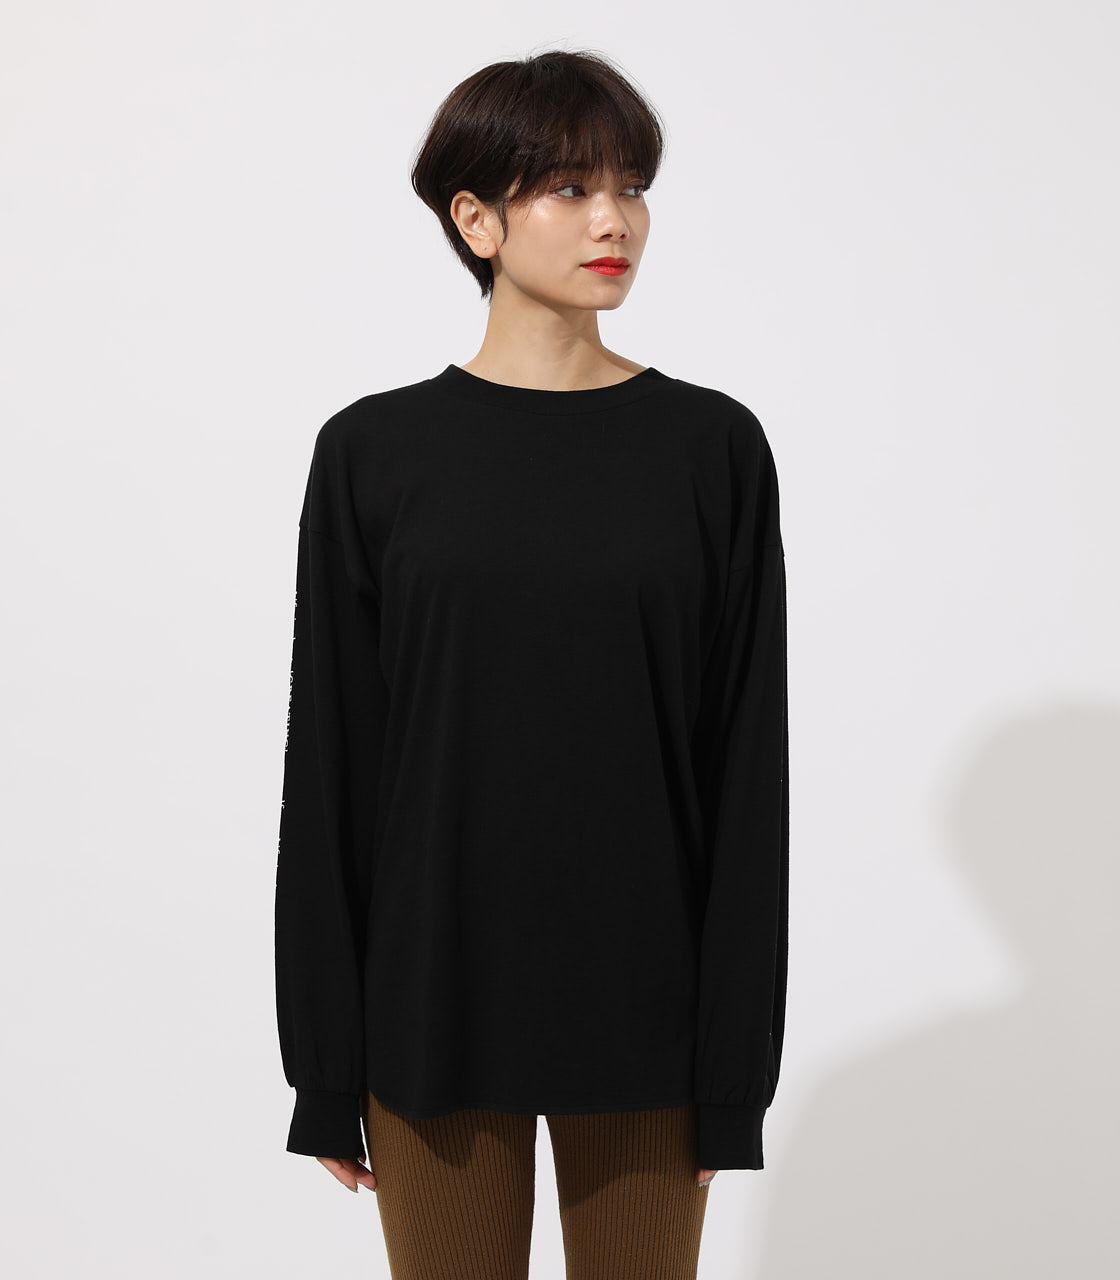 LONG SLEEVE LOOSE TOPS/ロングスリーブルーズトップス 詳細画像 BLK 4